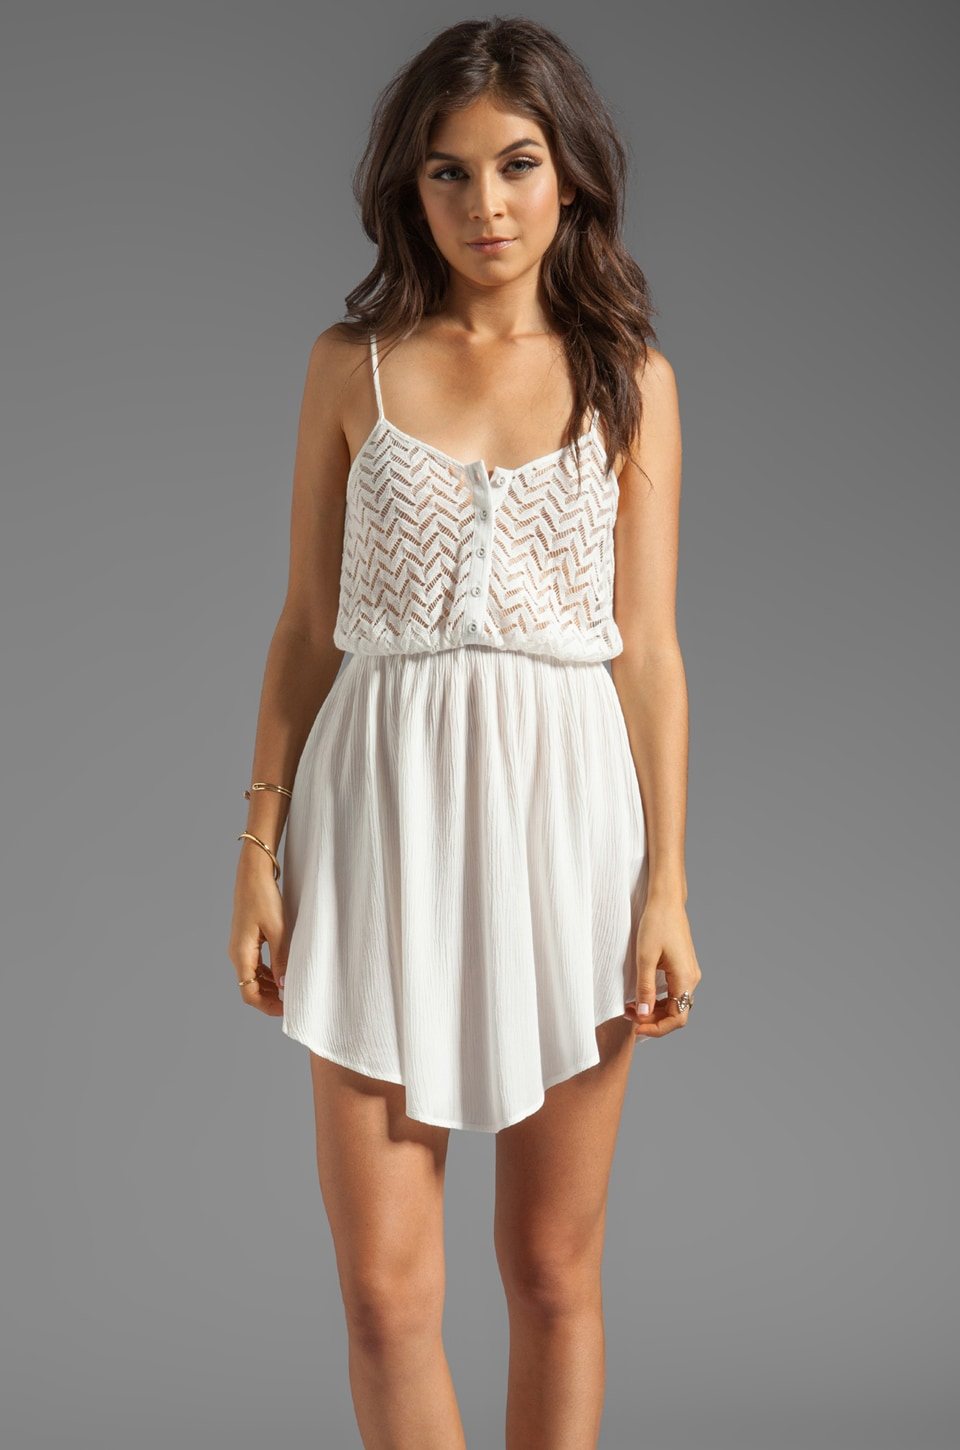 MINKPINK Getaway Sundress in White